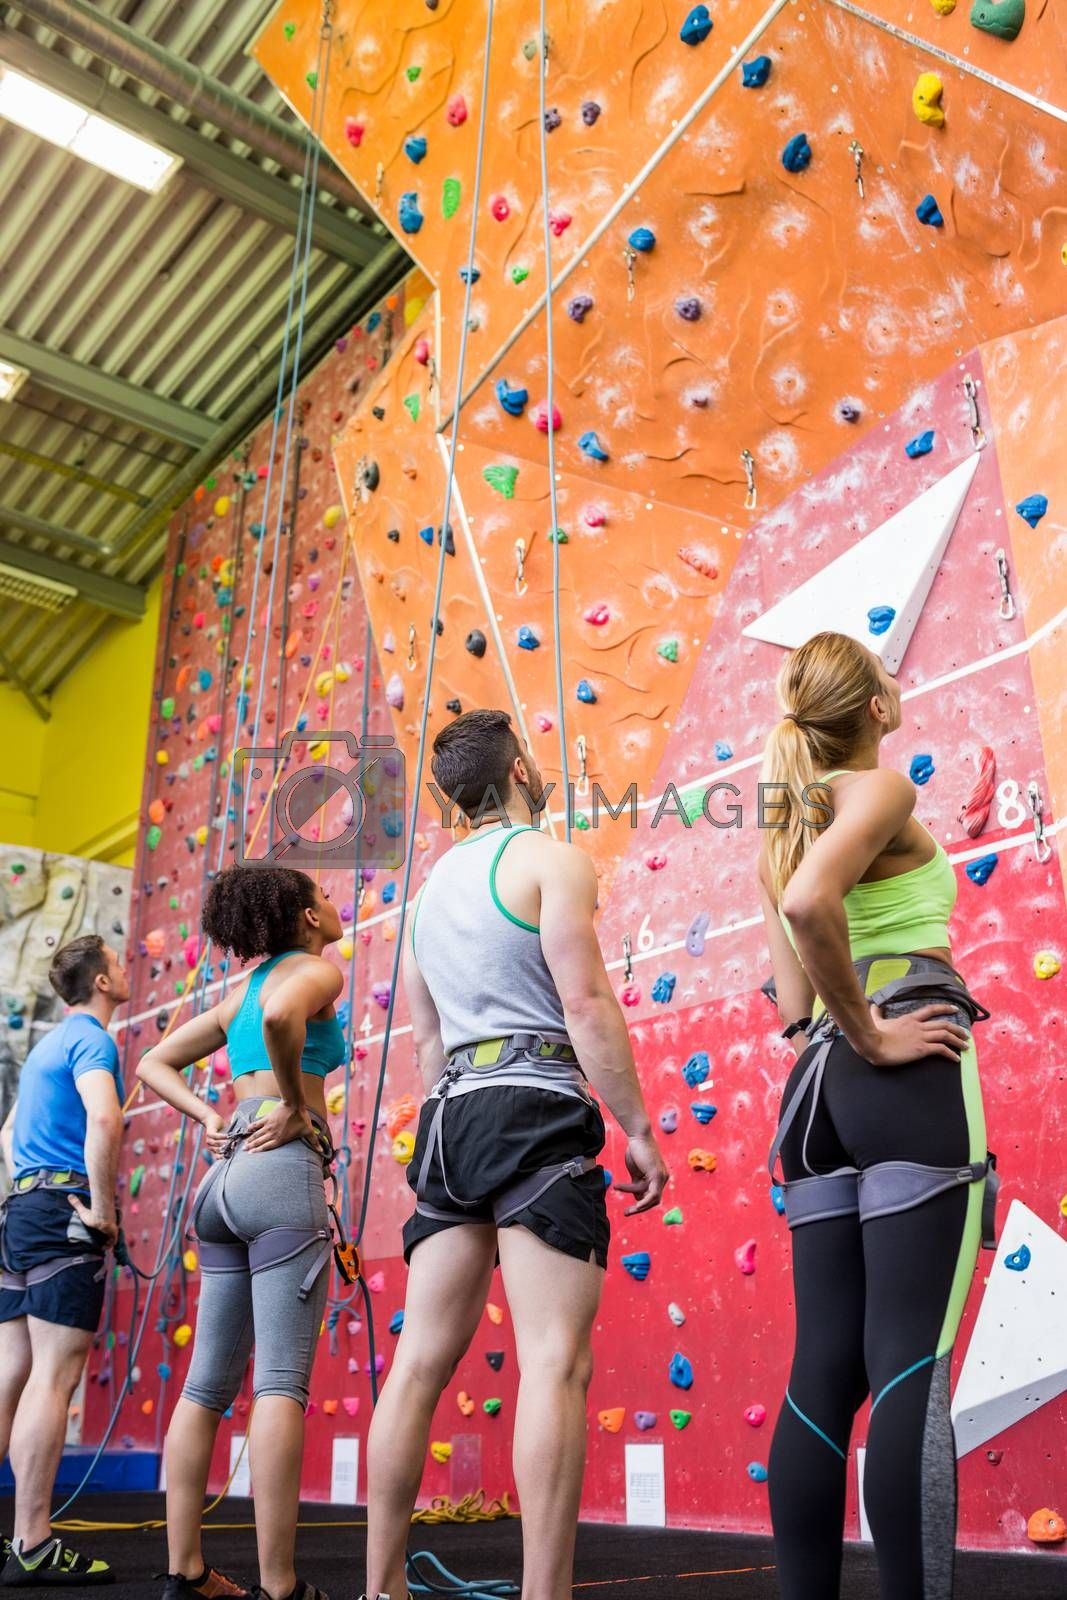 Fit people ready to rock climb at the gym